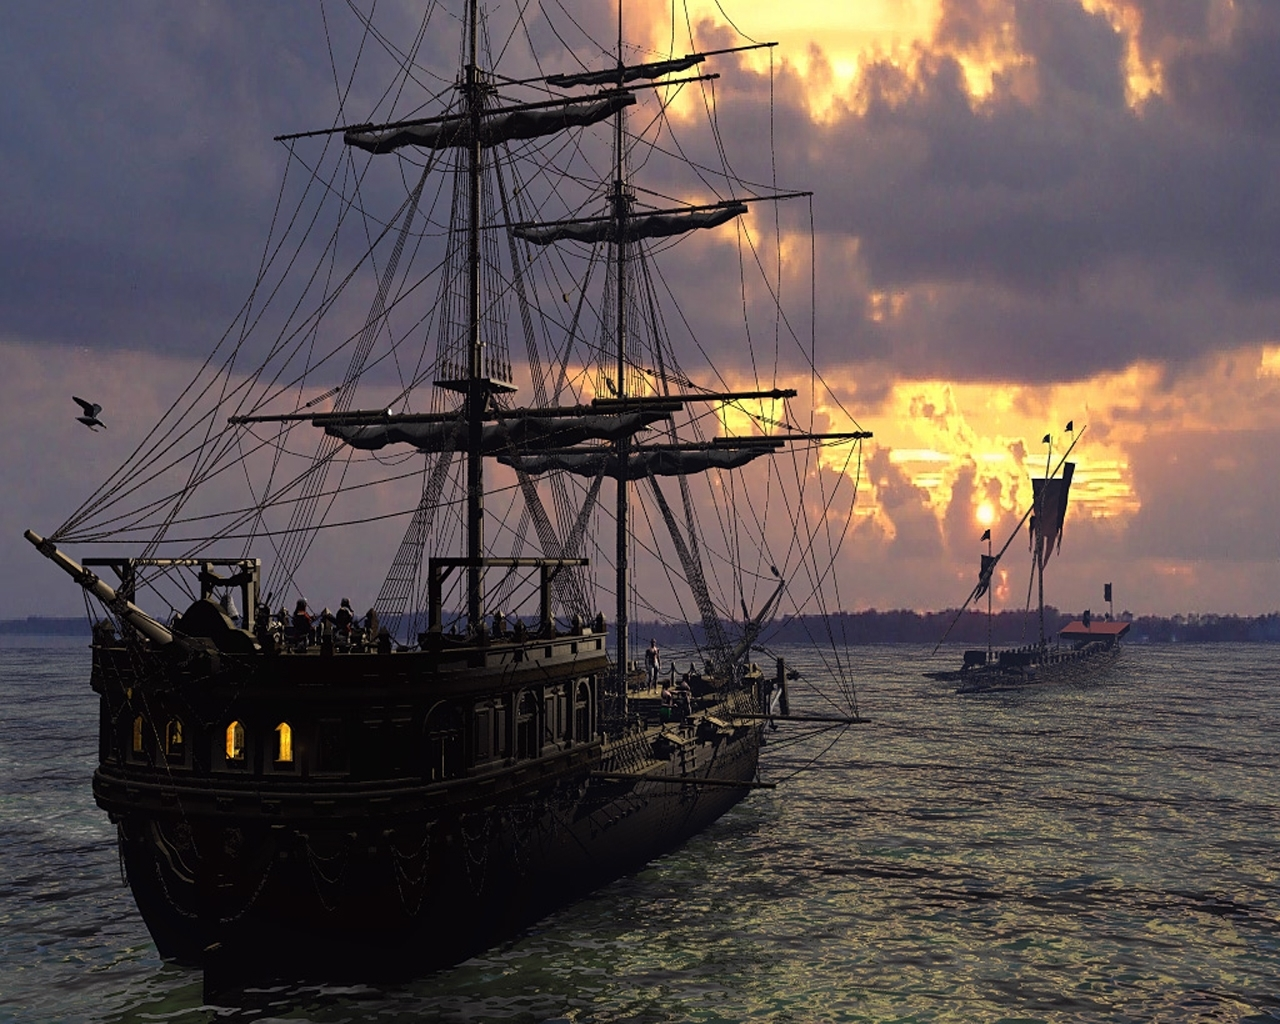 4190 download wallpaper Transport, Water, Sky, Art, Ships, Sea screensavers and pictures for free